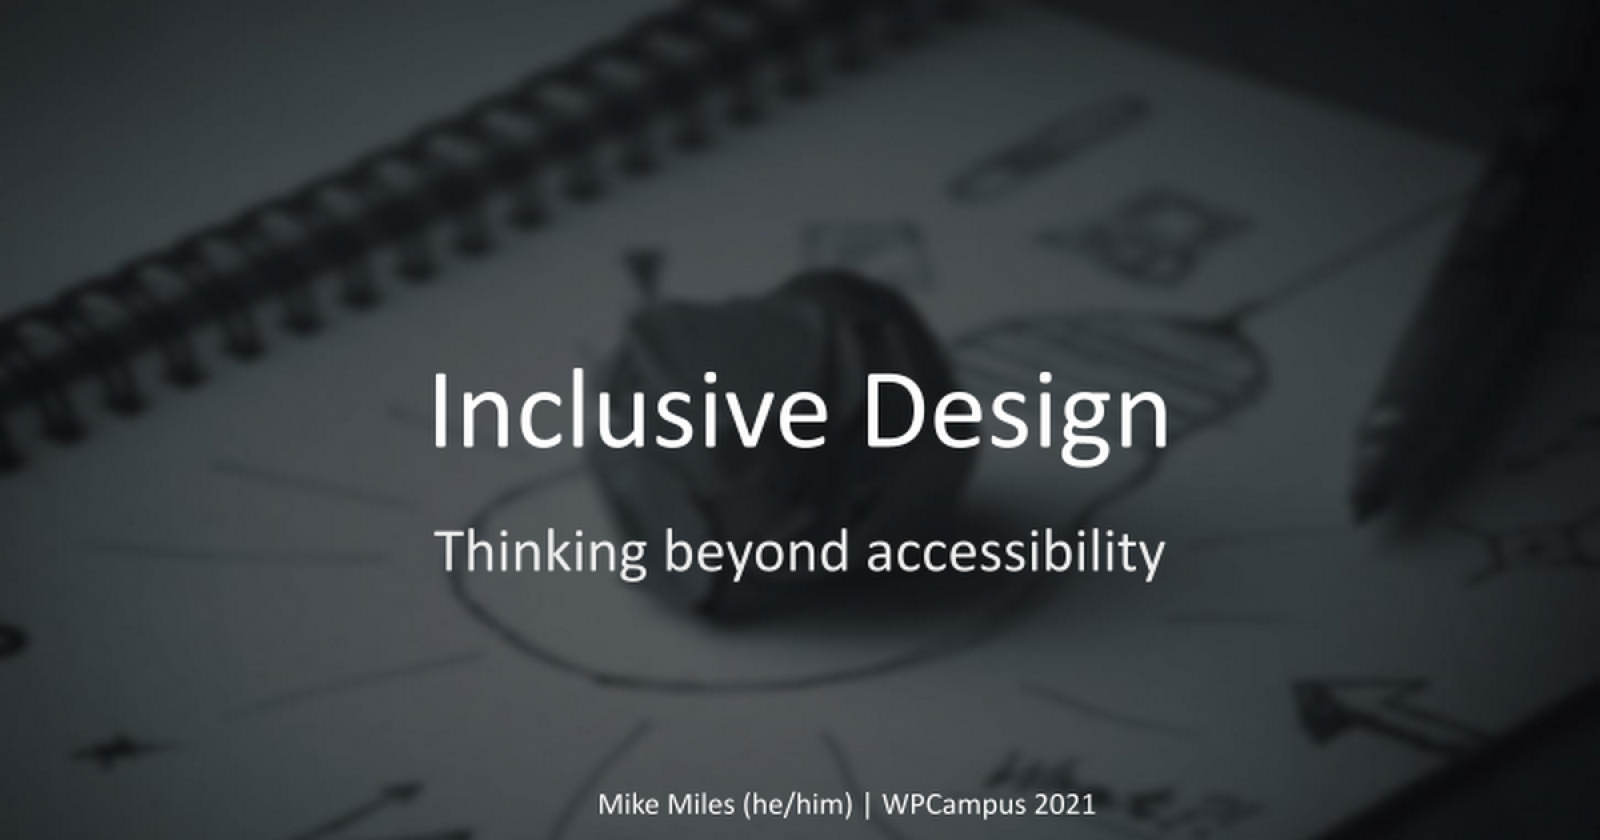 Inclusive Design: Thinking beyond accessibility